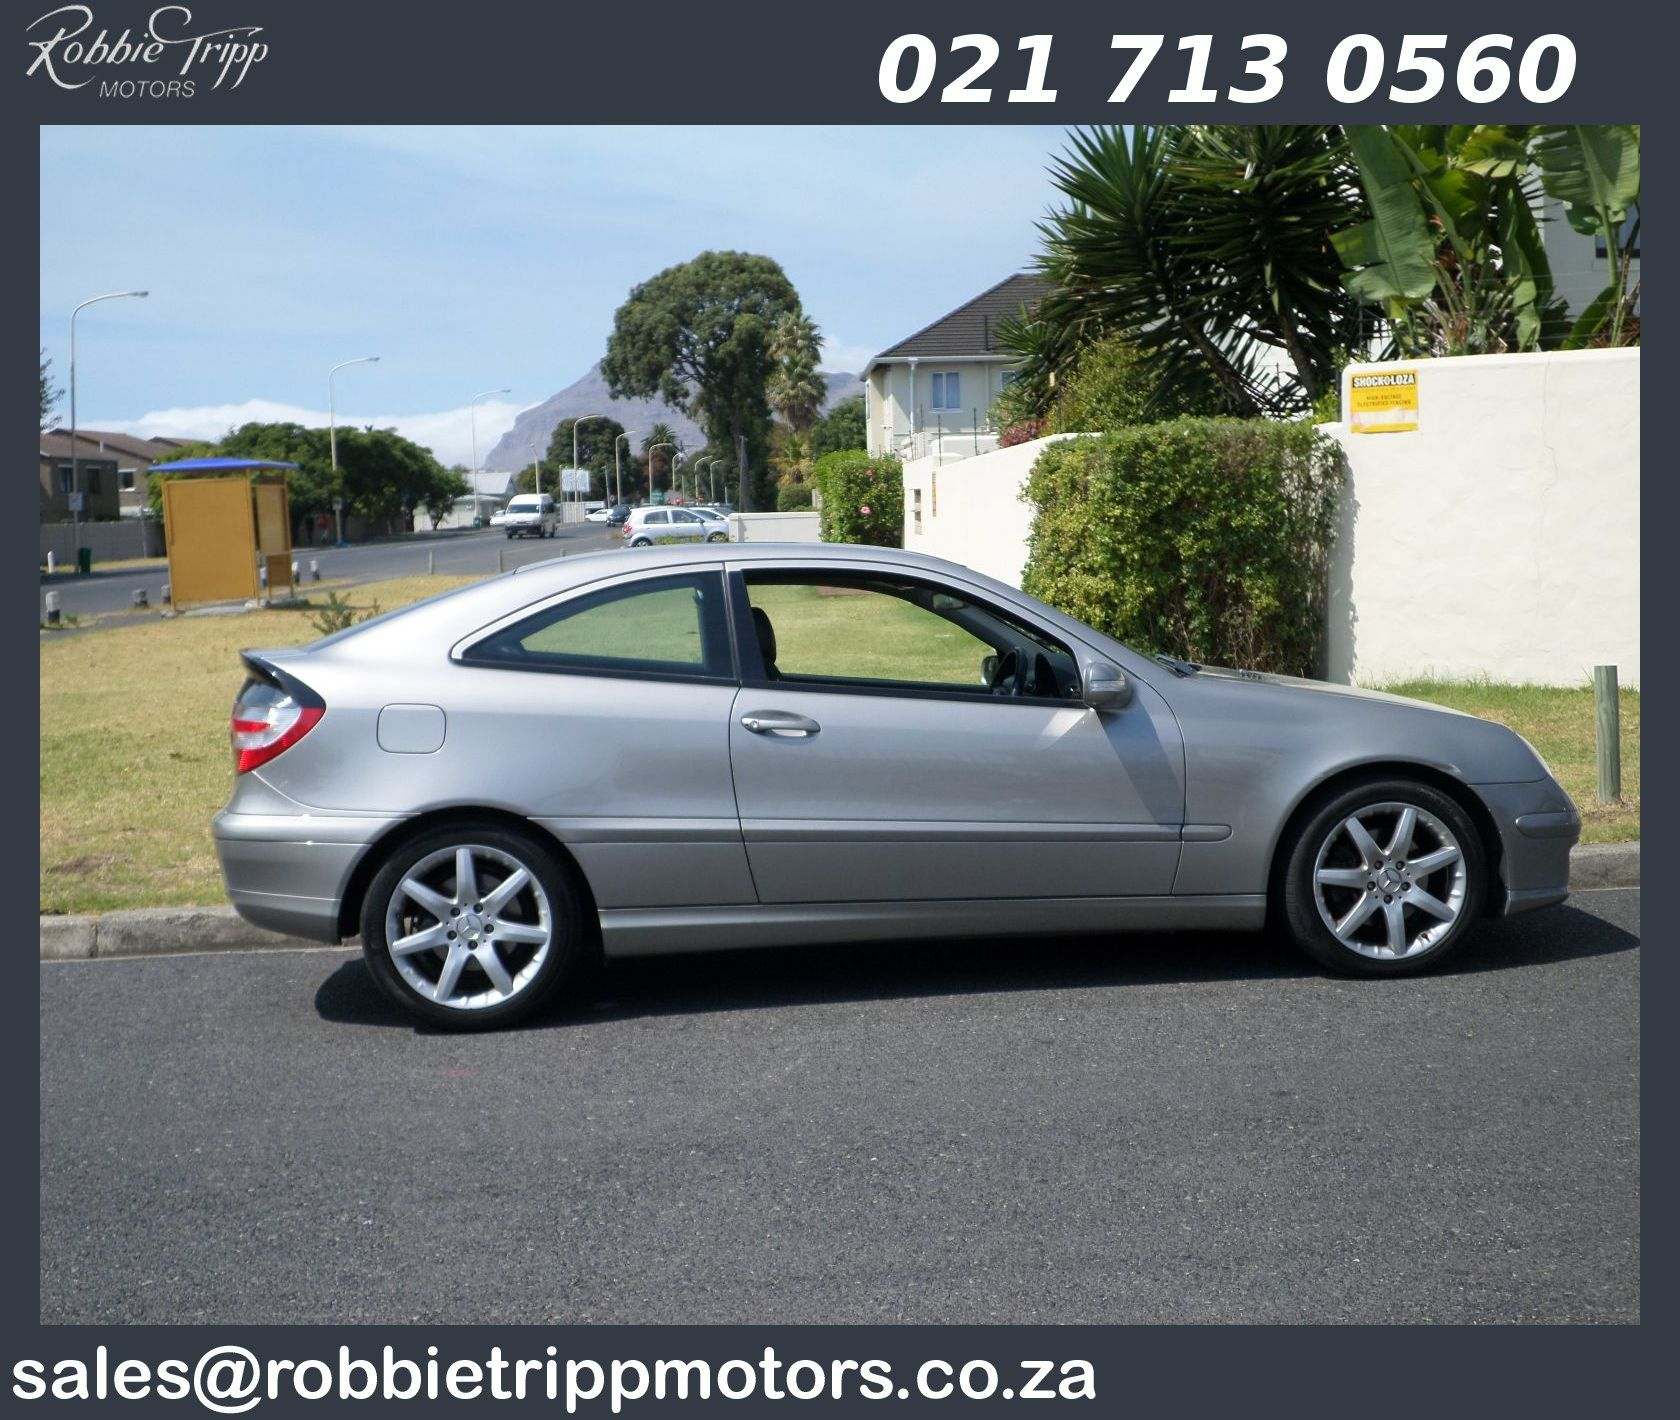 MERCEDES-BENZ C230 V6 COUPE Available